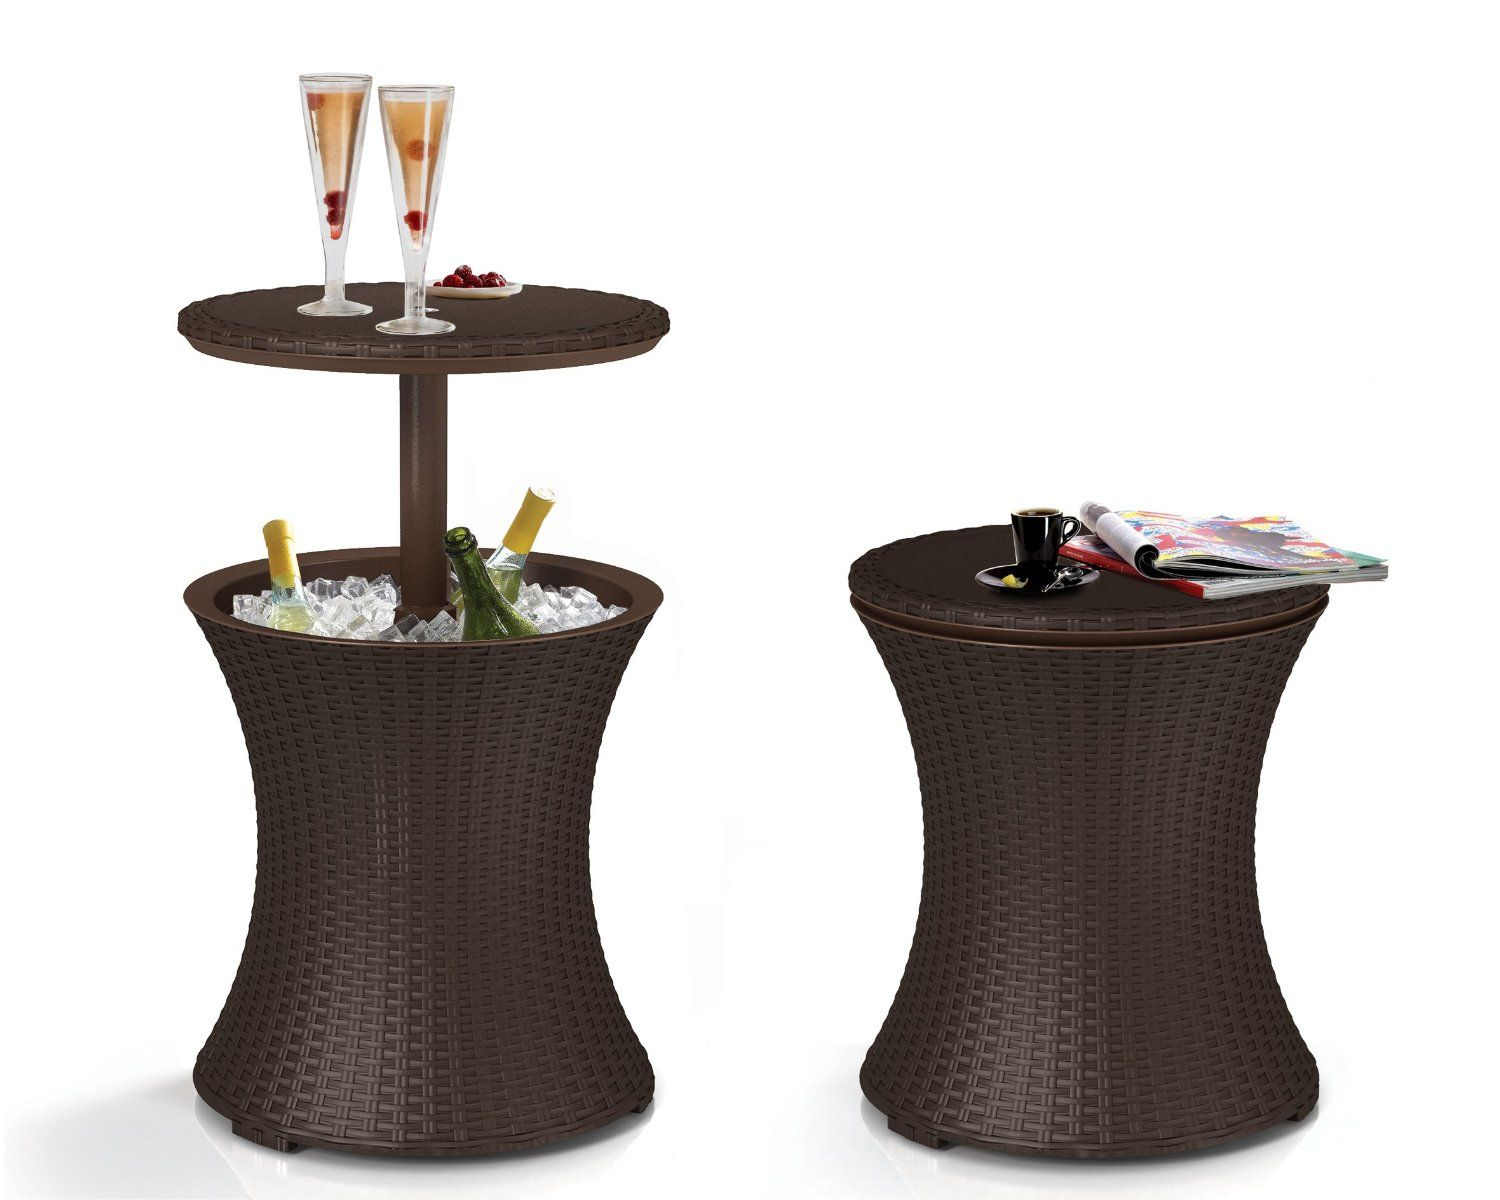 AmazonSmile: Keter Rattan Outdoor Patio Deck Pool Cool Bar Ice ...